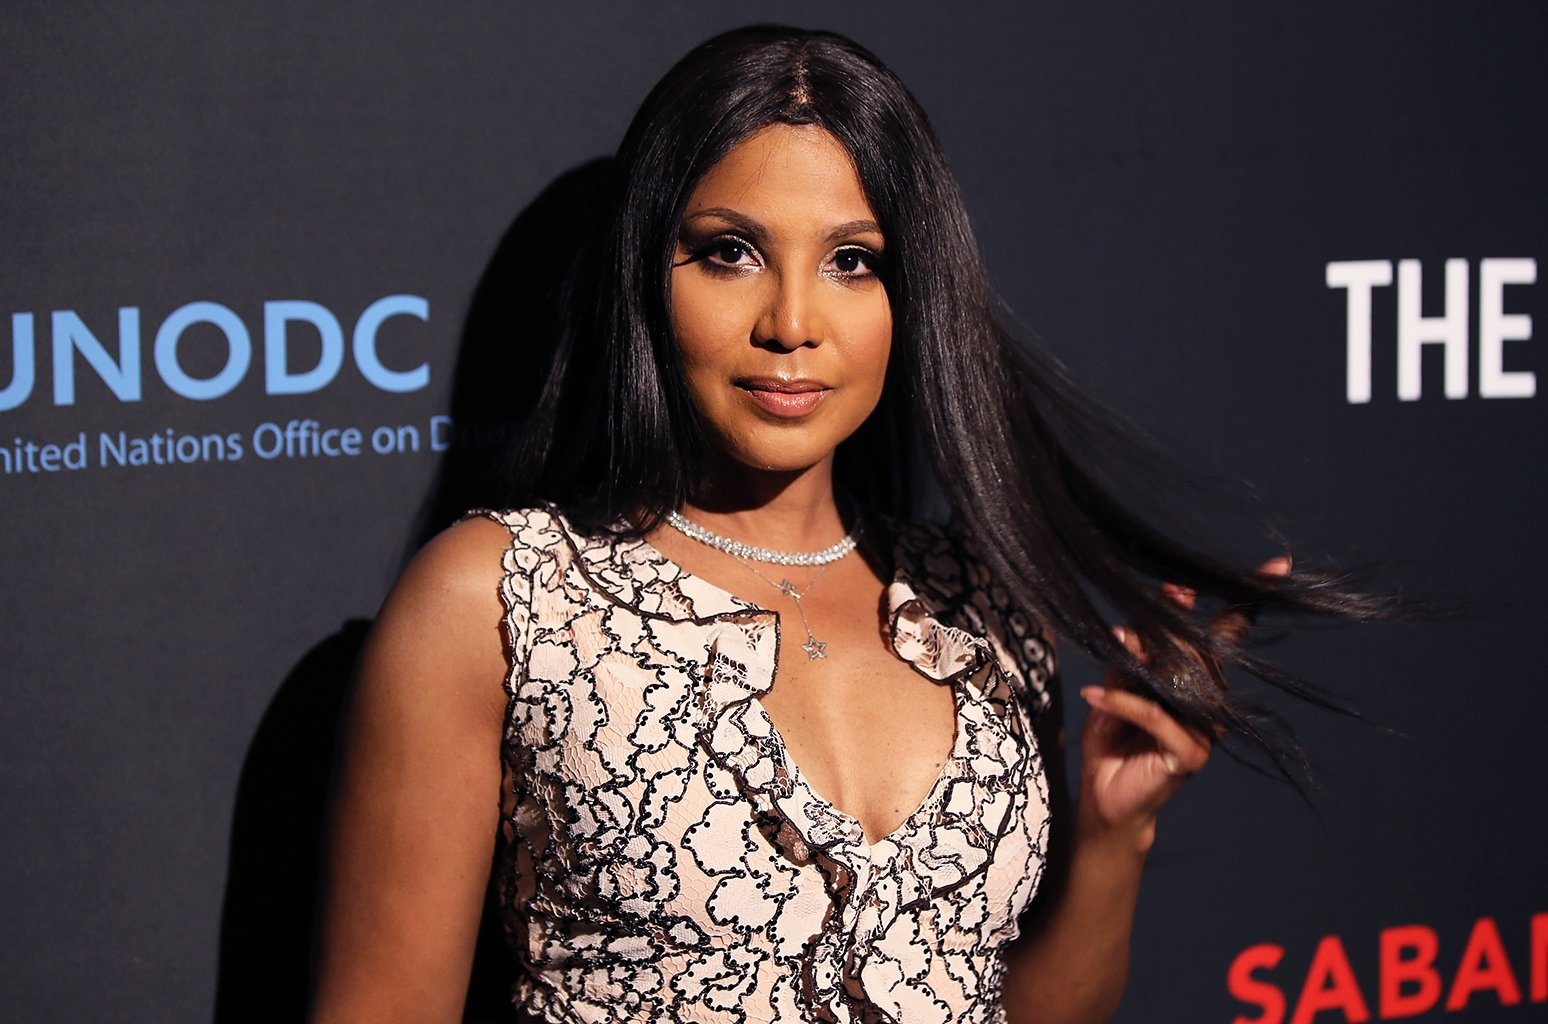 Toni Braxton Flaunts Her New Blonde Short Hair And Rocks This Red Dress